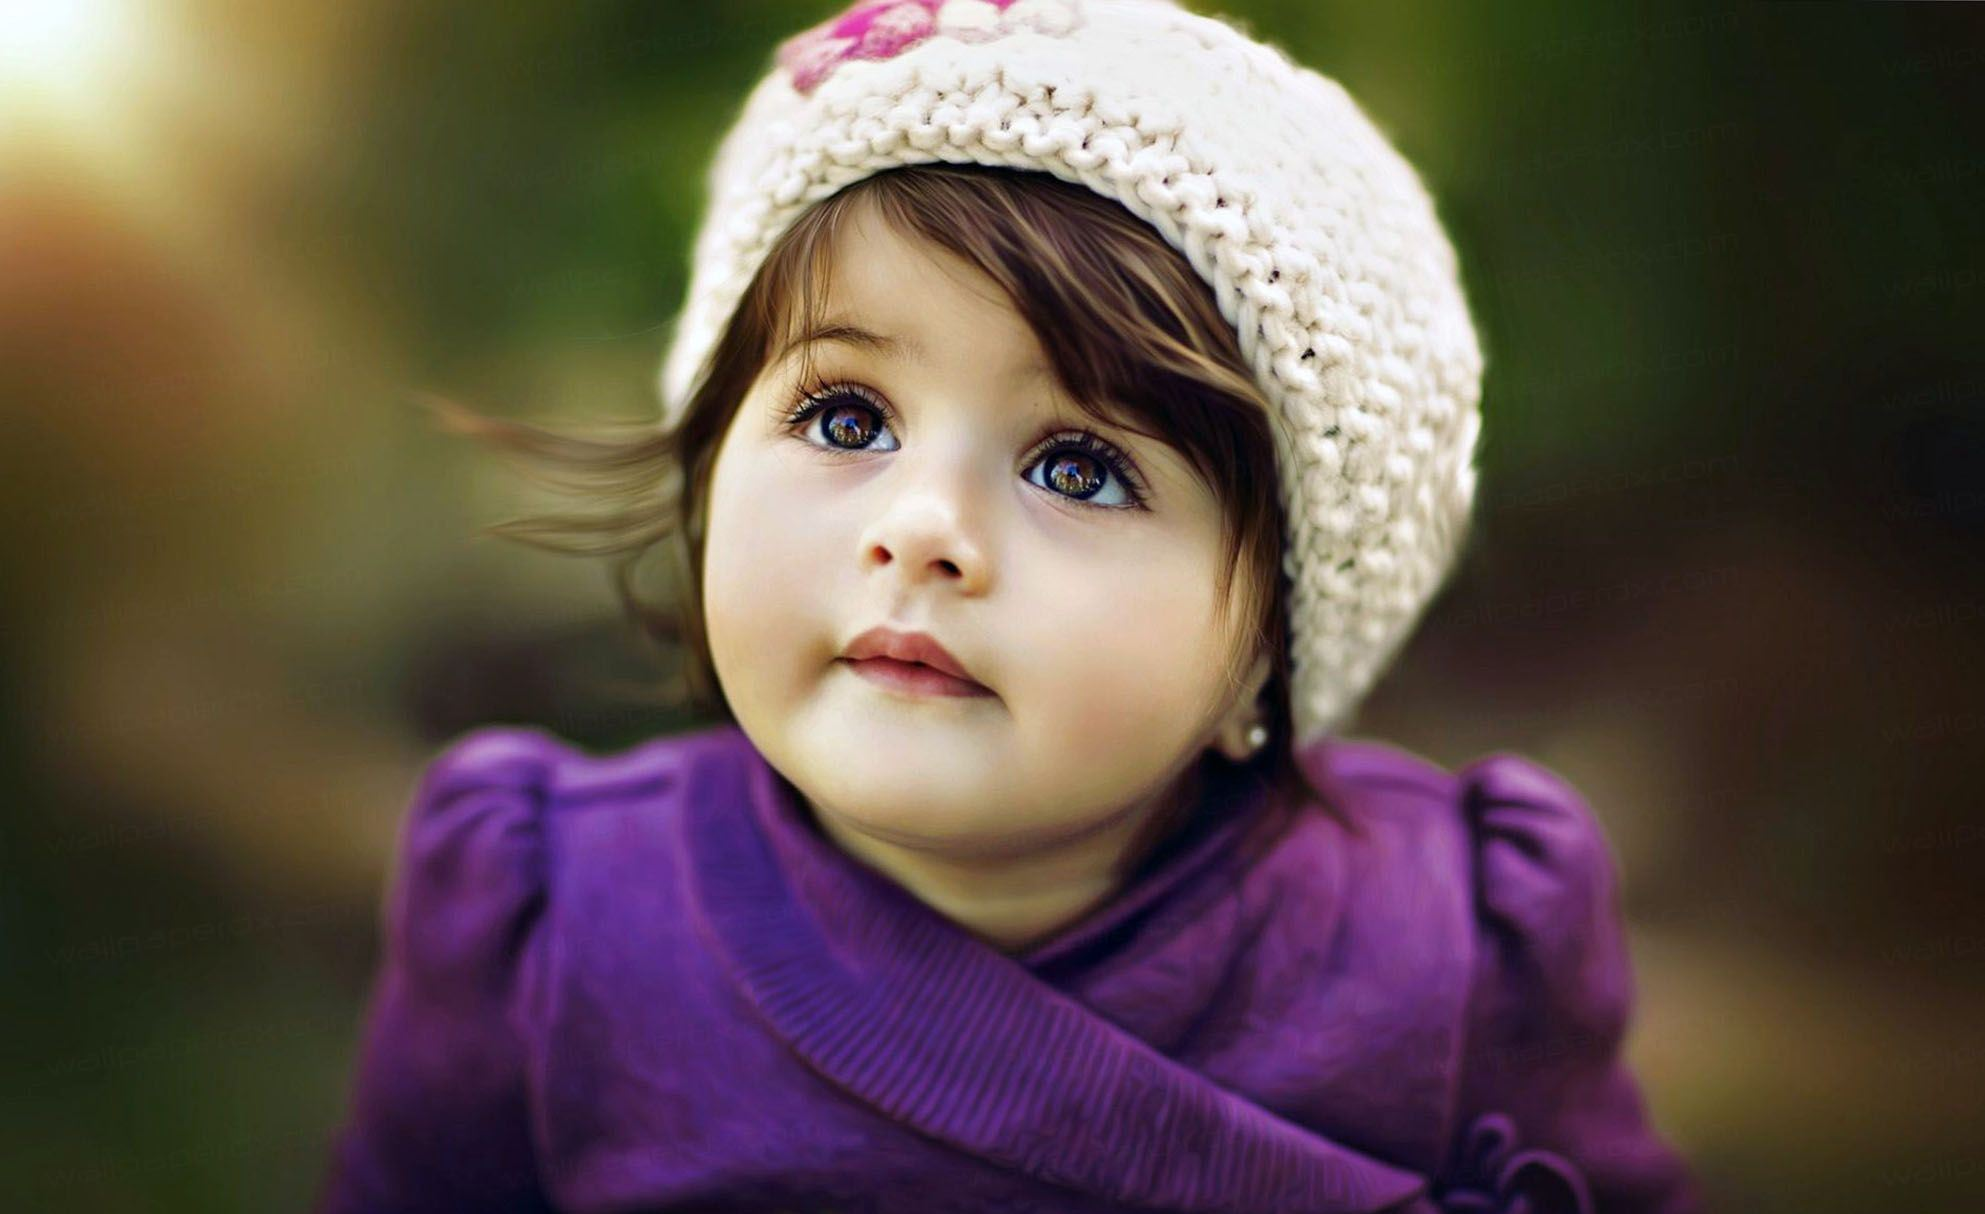 Cute Baby Images Cute Baby Photos Cute Baby Pic Cute Baby